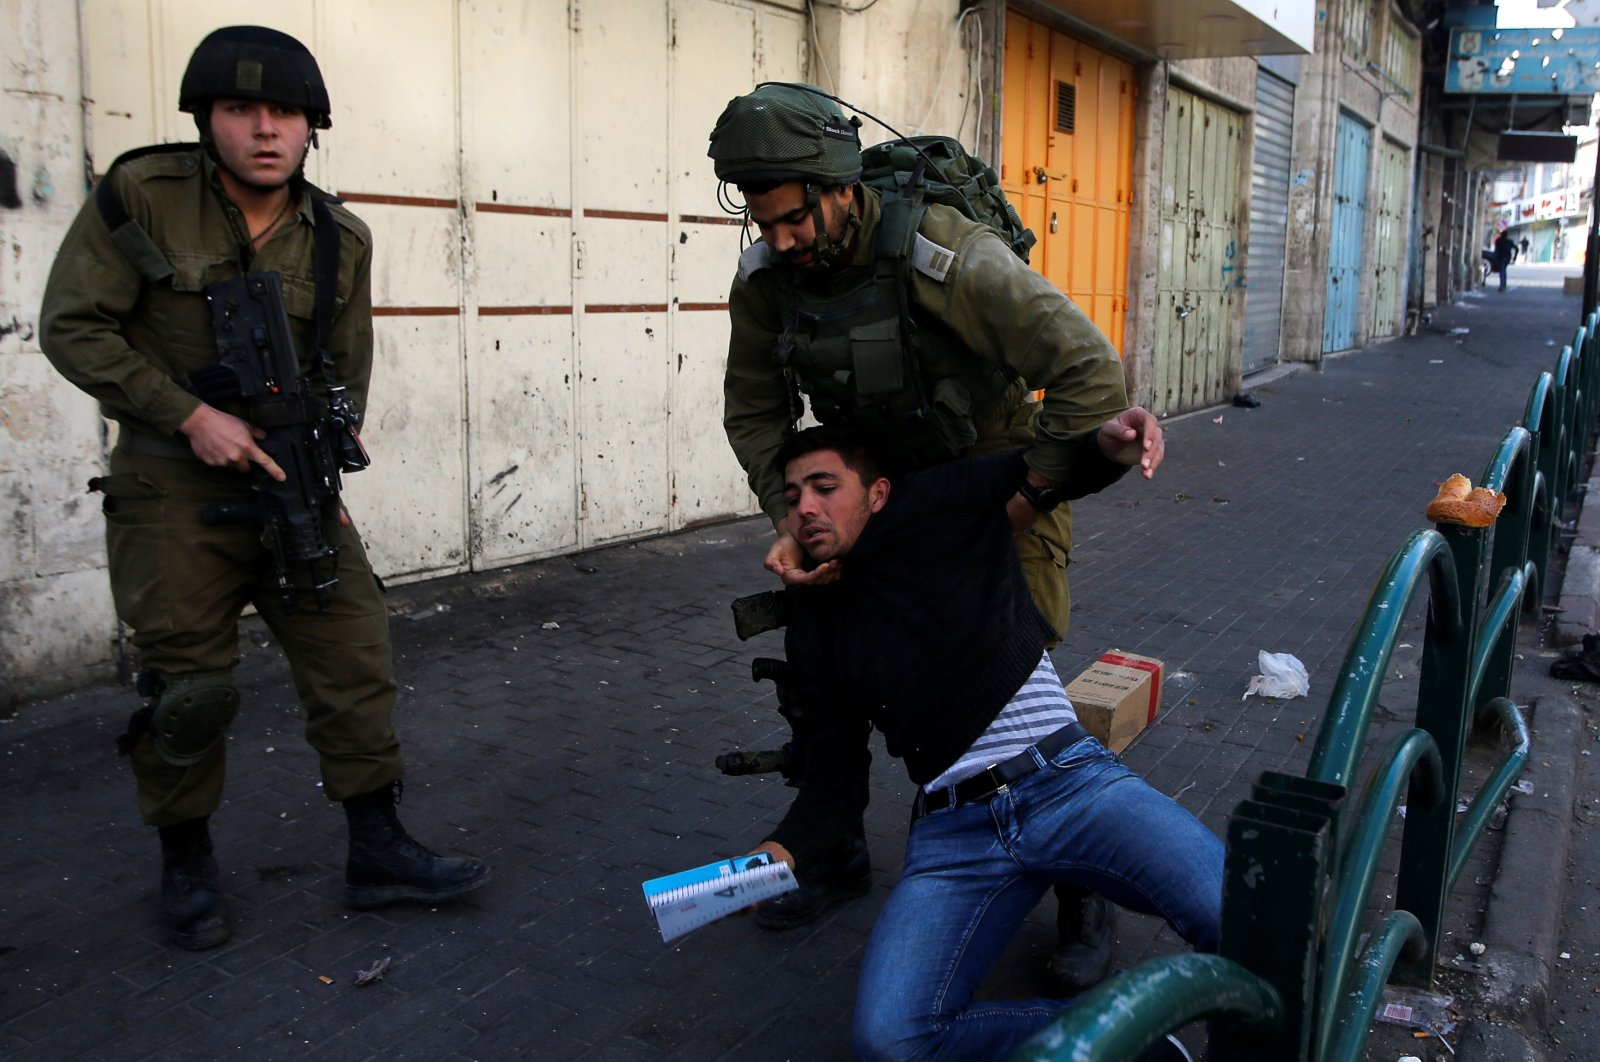 Israeli soldiers detain a Palestinian during clashes at a protest against U.S. President Donald Trump's decision to recognize Jerusalem as the capital of Israel, Hebron, West Bank, Dec. 10, 2017. (Reuters Photo)